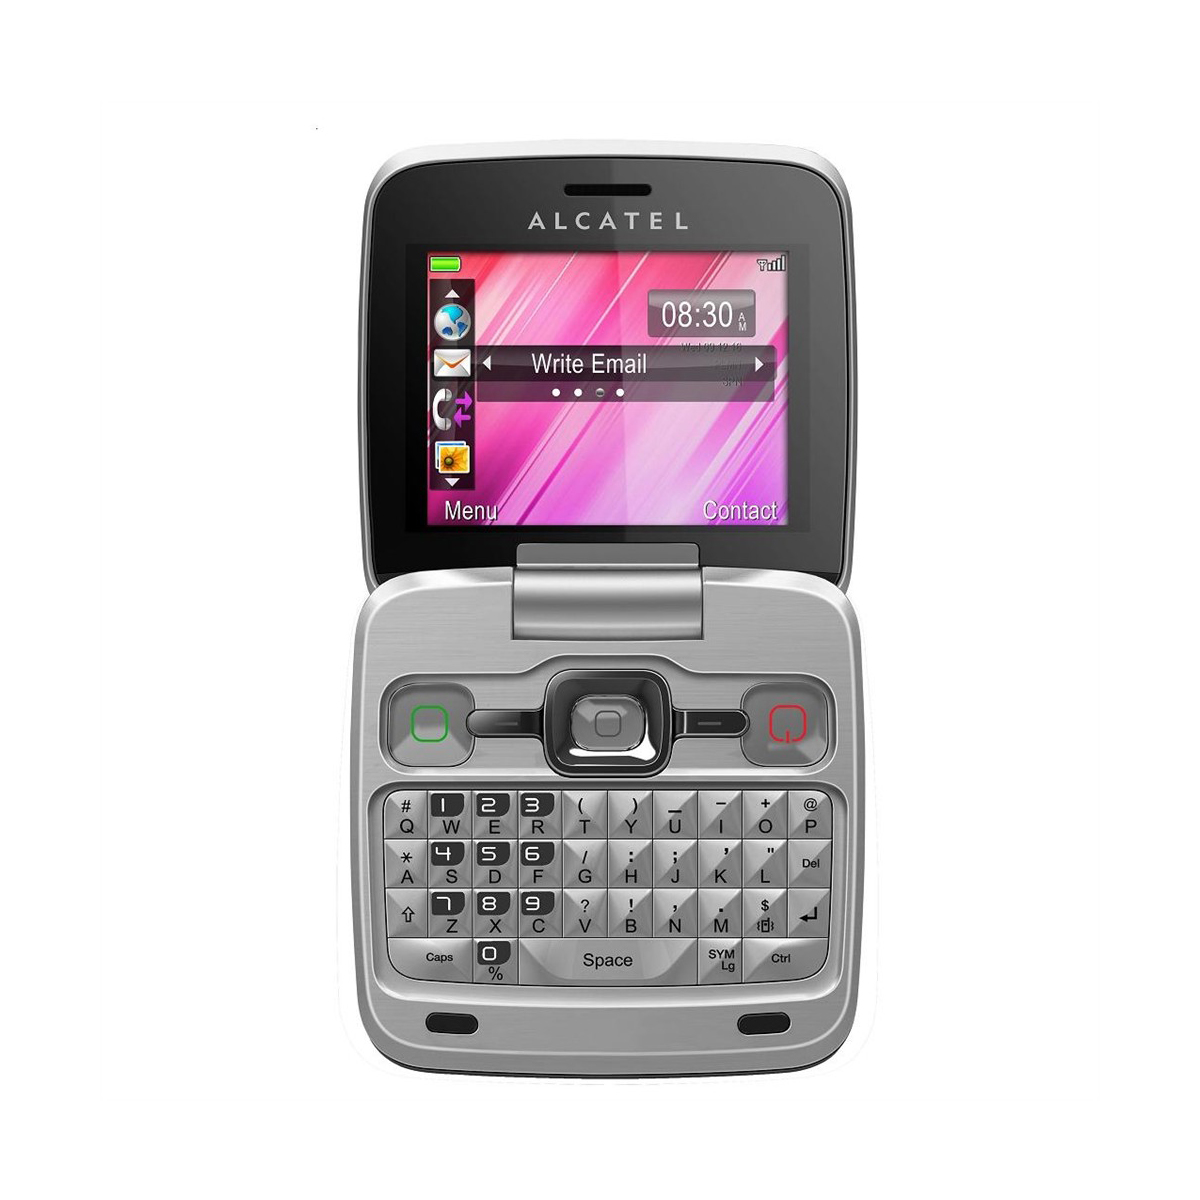 Alcatel One Touch Flip Phone Alcatel One Touch Flip Phone